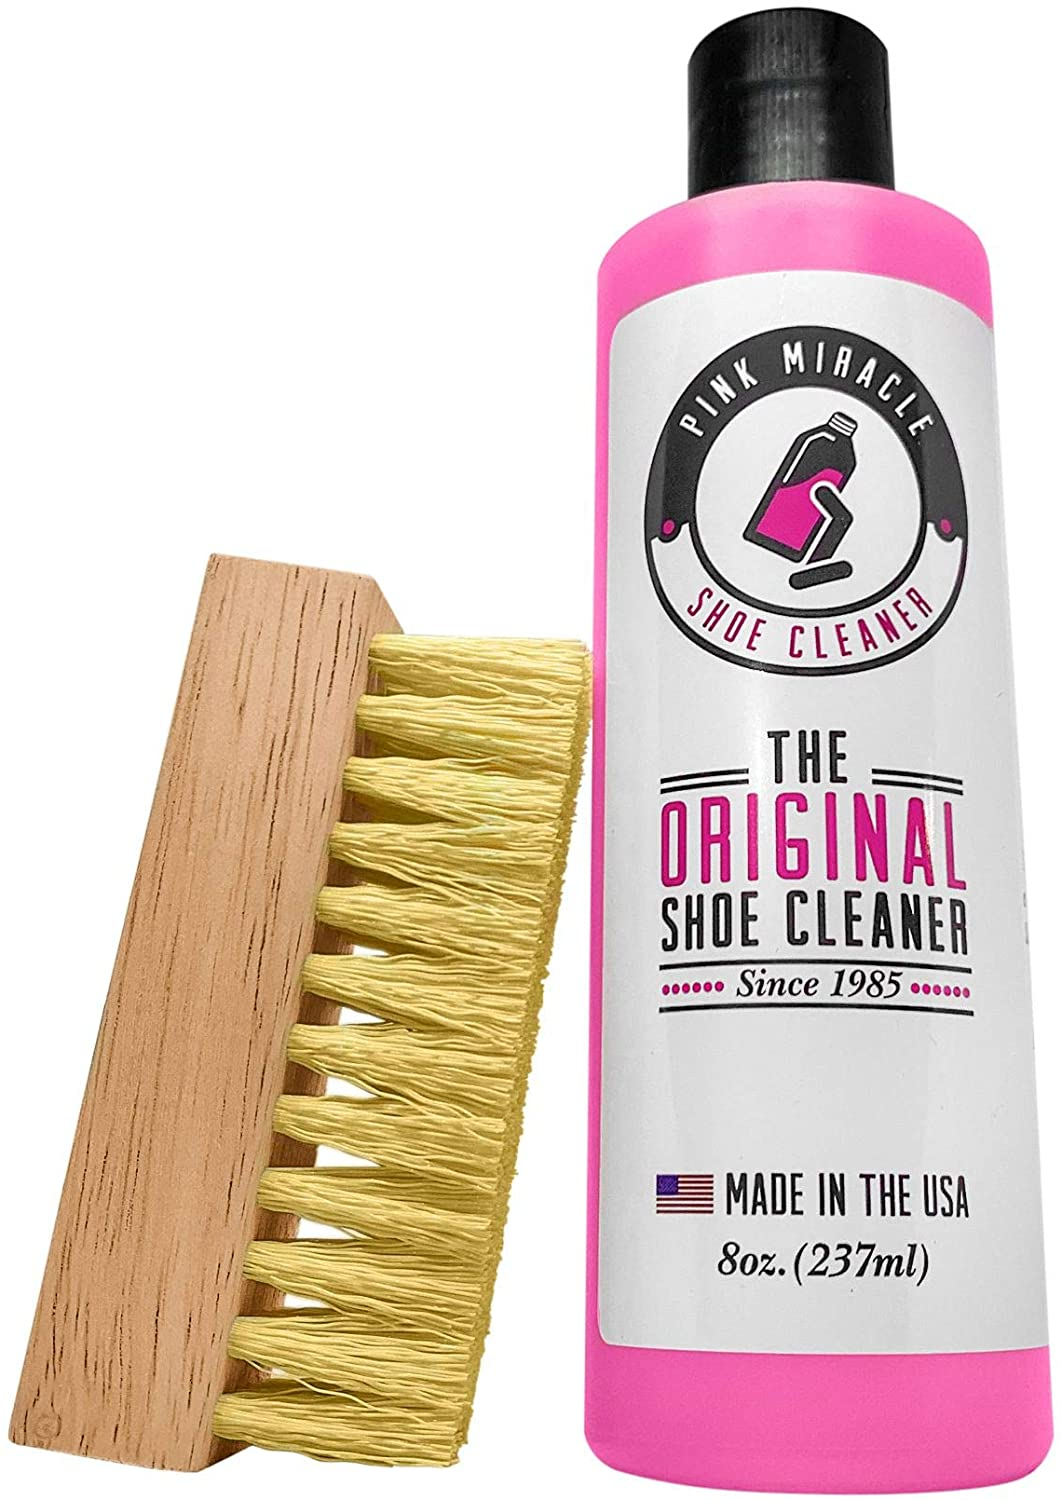 Pink Miracle Shoe Cleaner Kit 8 Oz. Bottle Fabric Cleaner for Leather, Whites, and Nubuck Sneakers